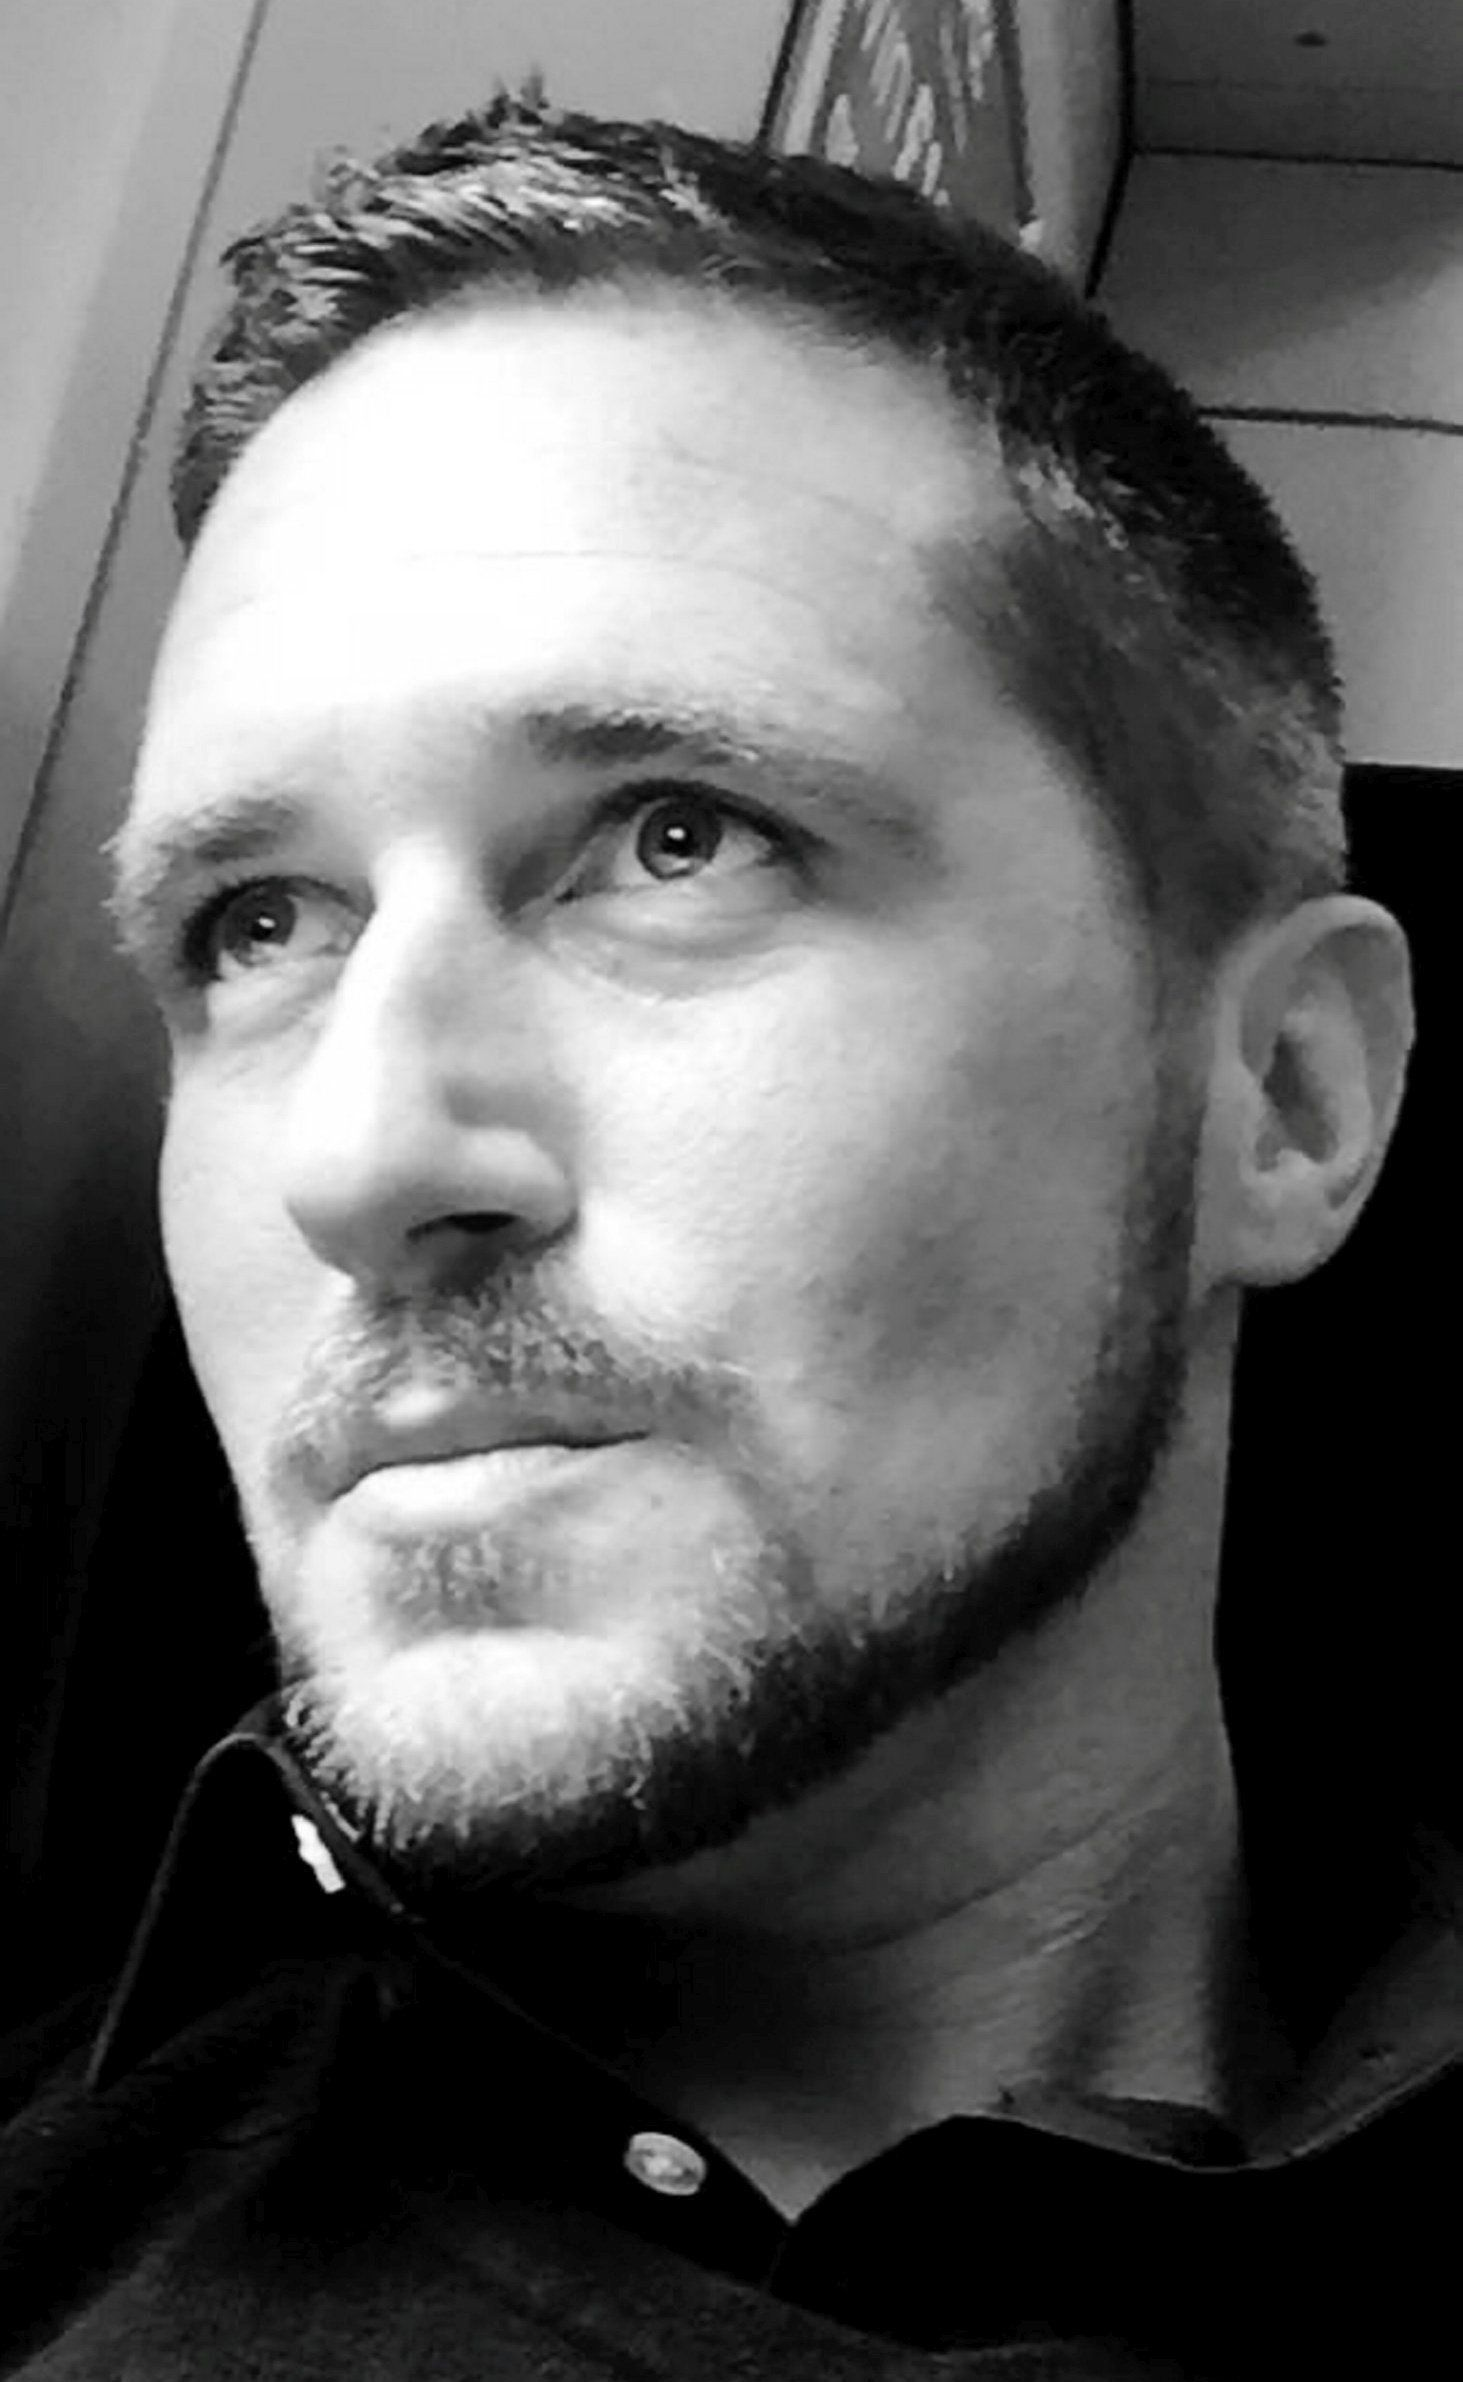 Maxwell Bates-Spiers, widely known as Max Spiers, died in Warsaw at the age of 39 after taking a combination of prescription drugs whilst suffering from pneumonia, an inquest has found